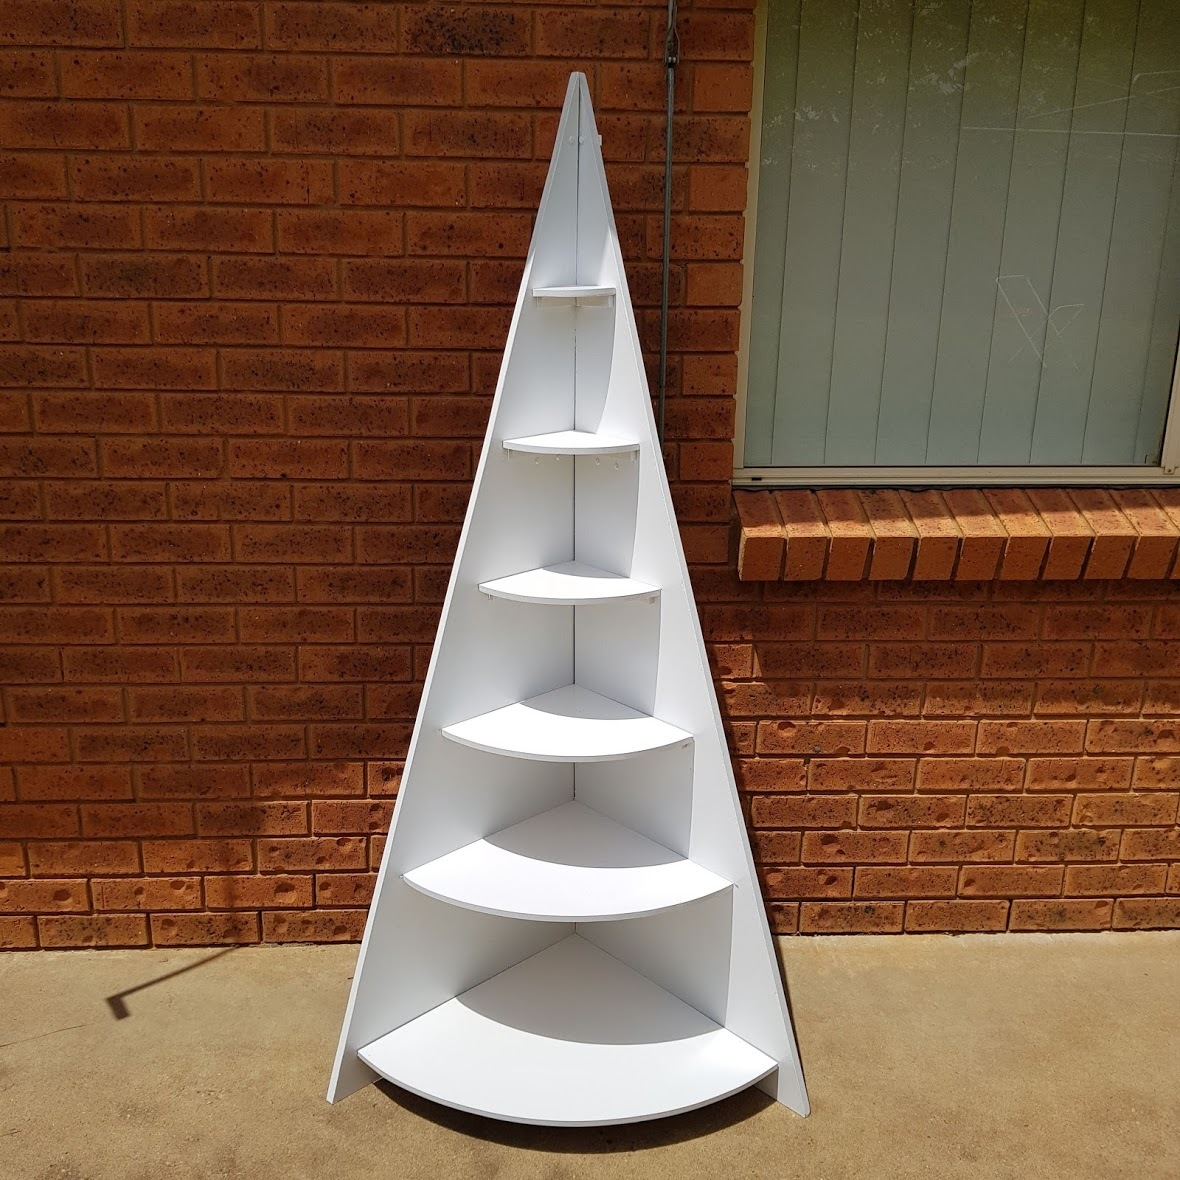 How To Make A Corner Christmas Tree Shelf 7 Steps With Pictures Instructables